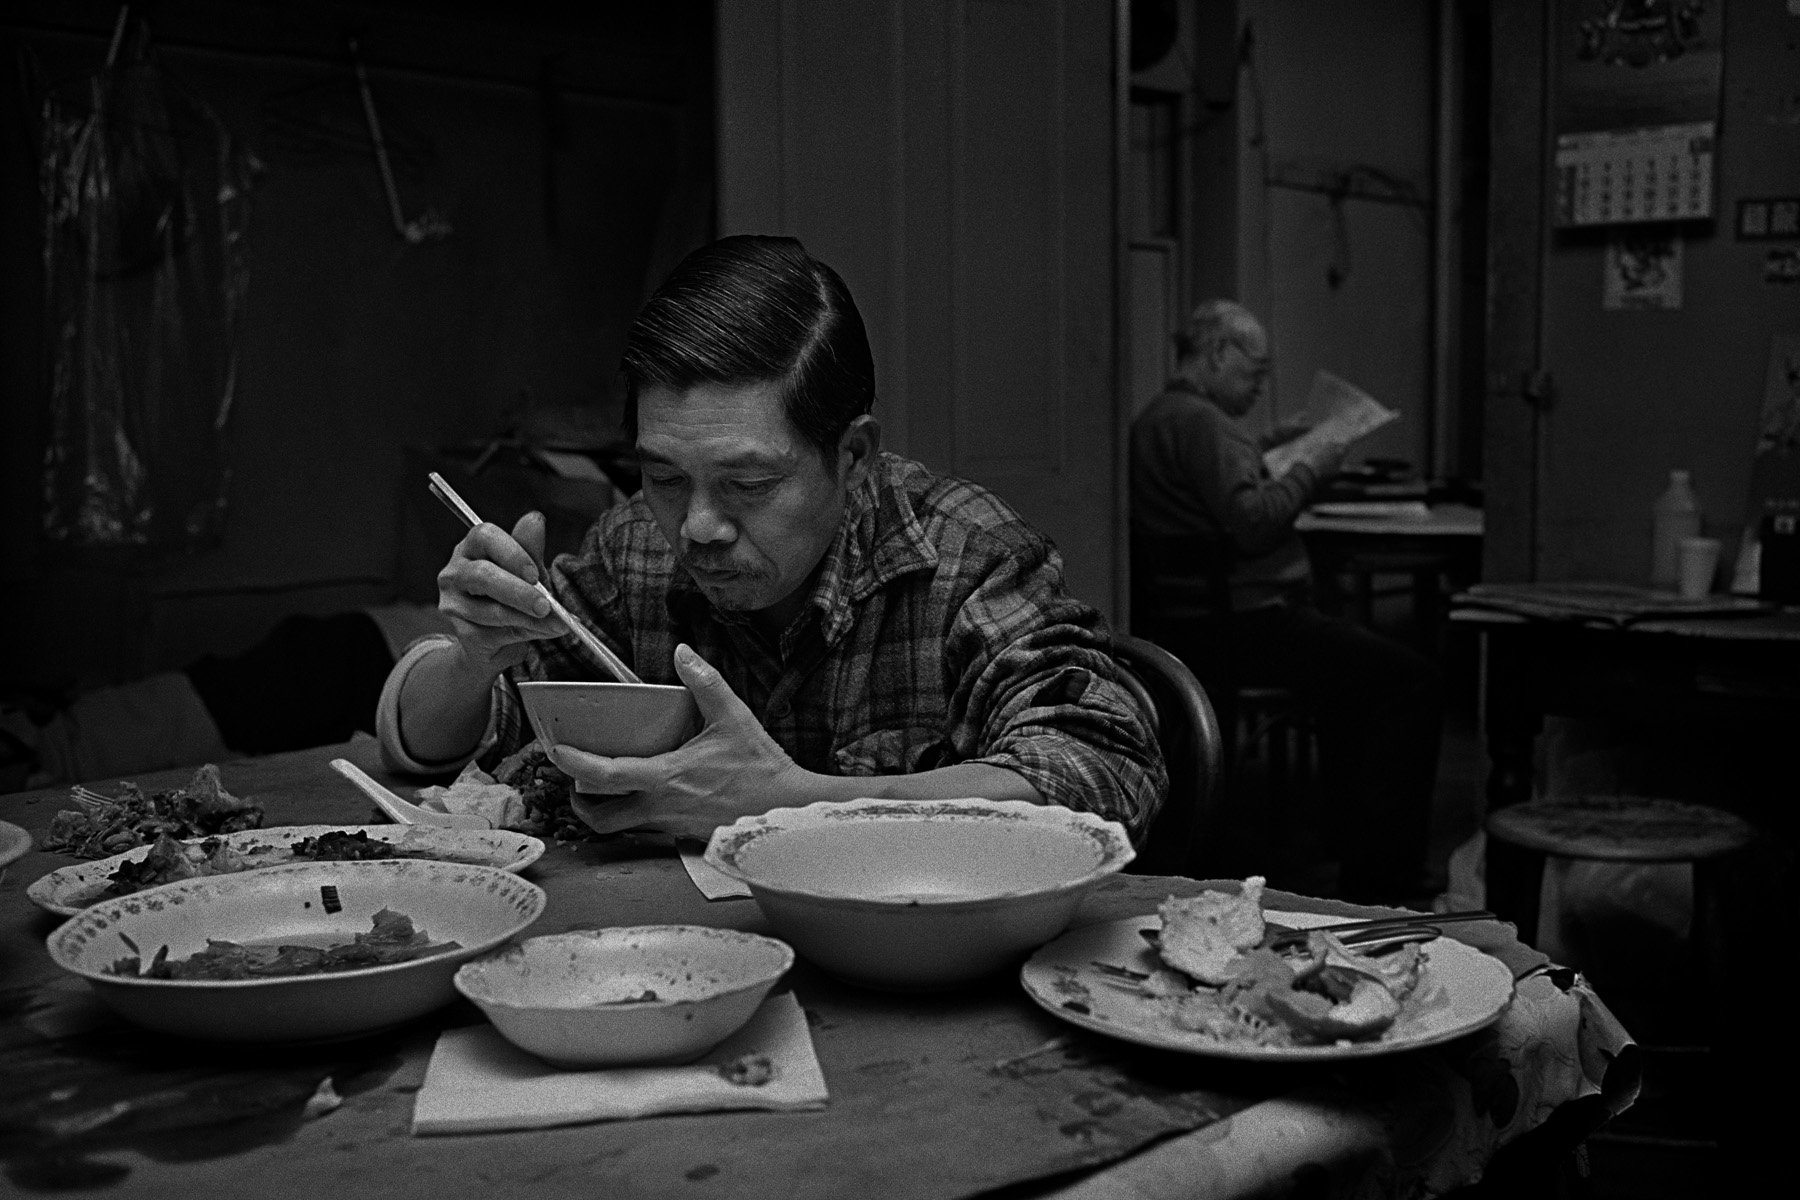 A man eats dinner at the common table in the Bachelor Apartment he shares with 3 other men on Bayard St. in New York Chinatown. Mr. Ng read a newspaper in the doorway in the background. 1982